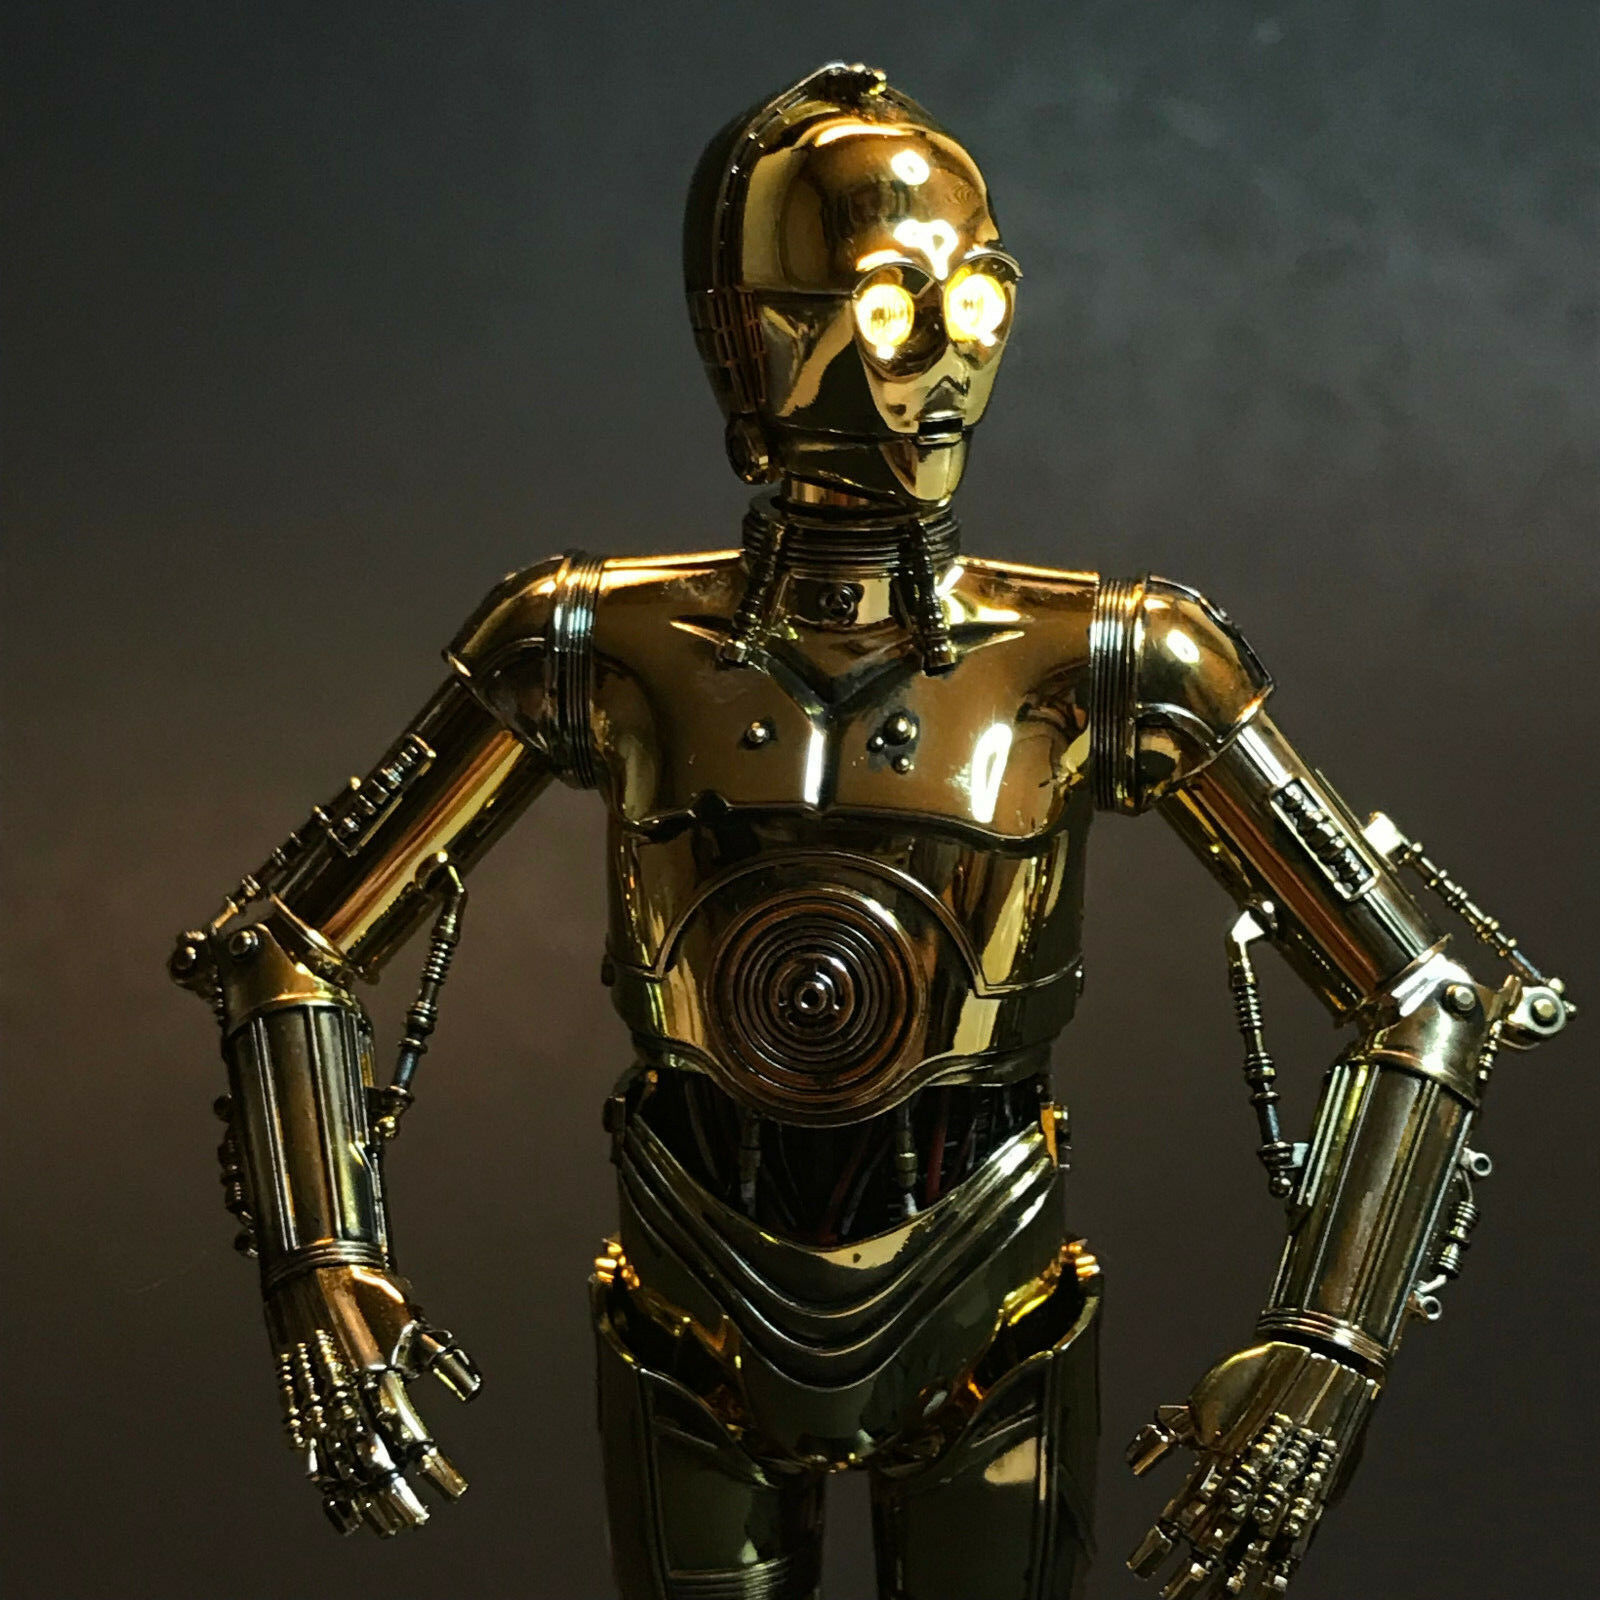 *LIGHTING KIT ONLY* for Bandai 1/12 Star Wars C-3PO Protocol Droid Figure